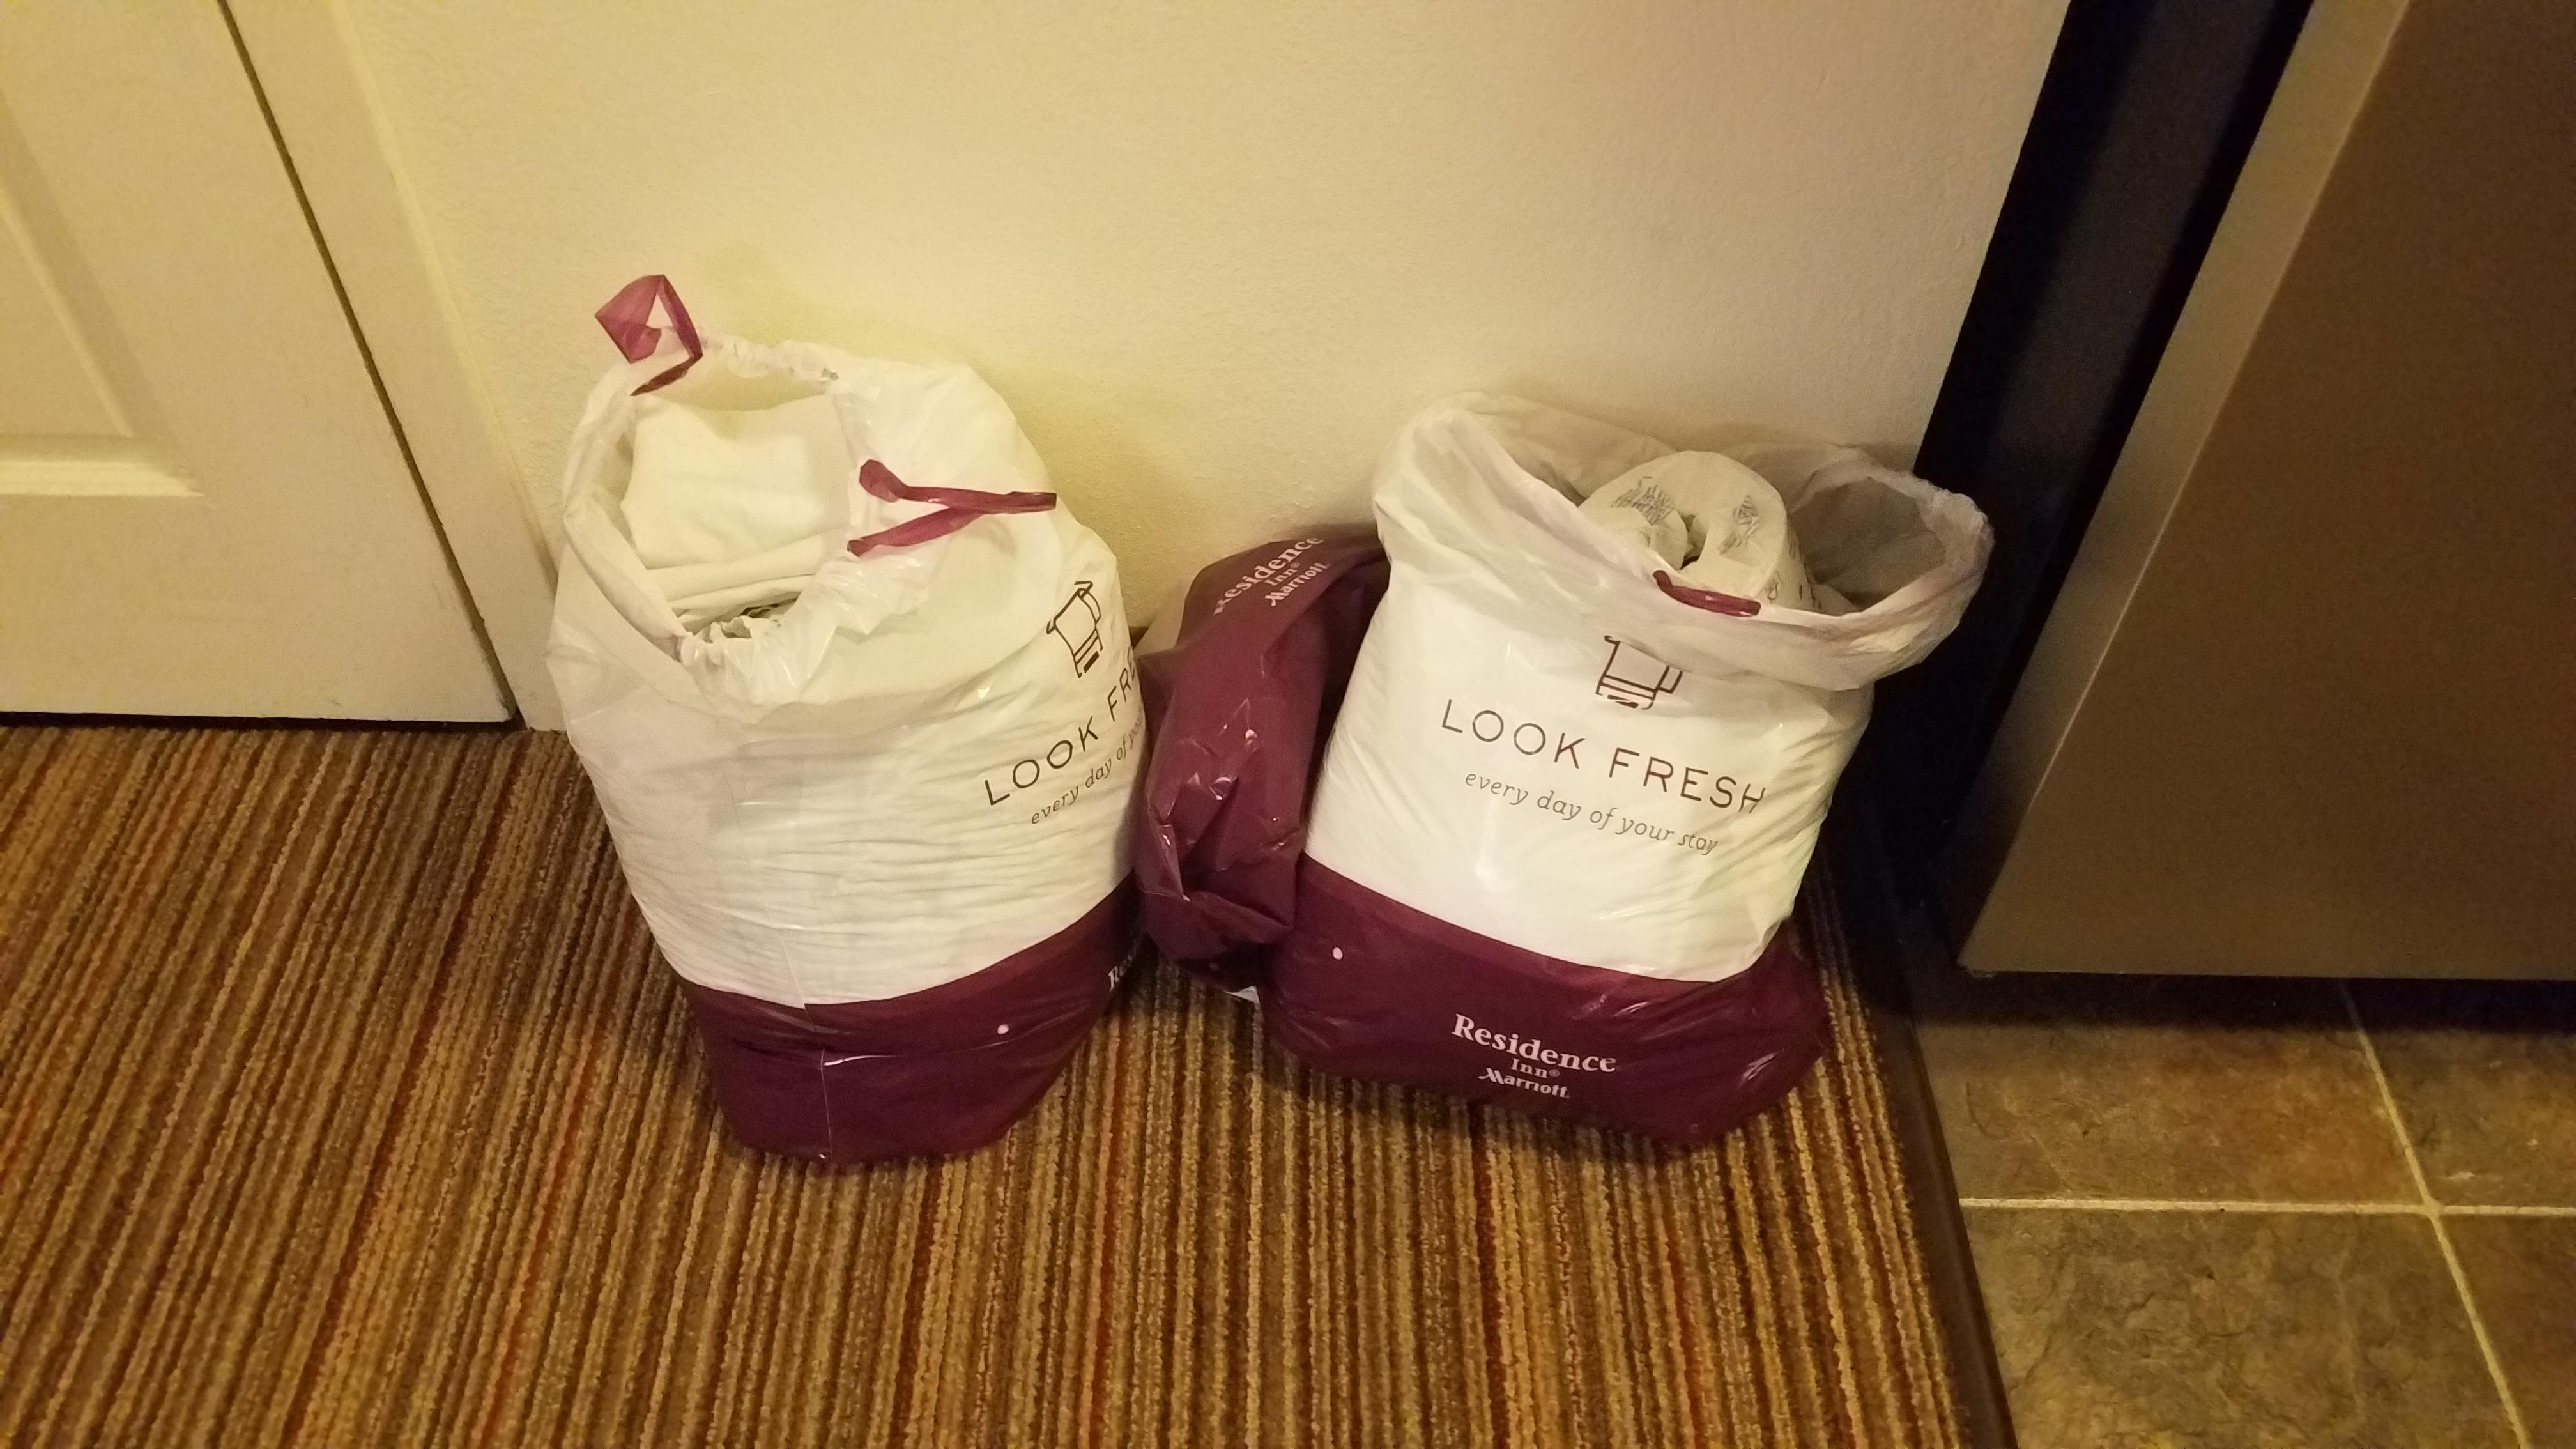 The bags of towels and sheets after no show on housekeeping